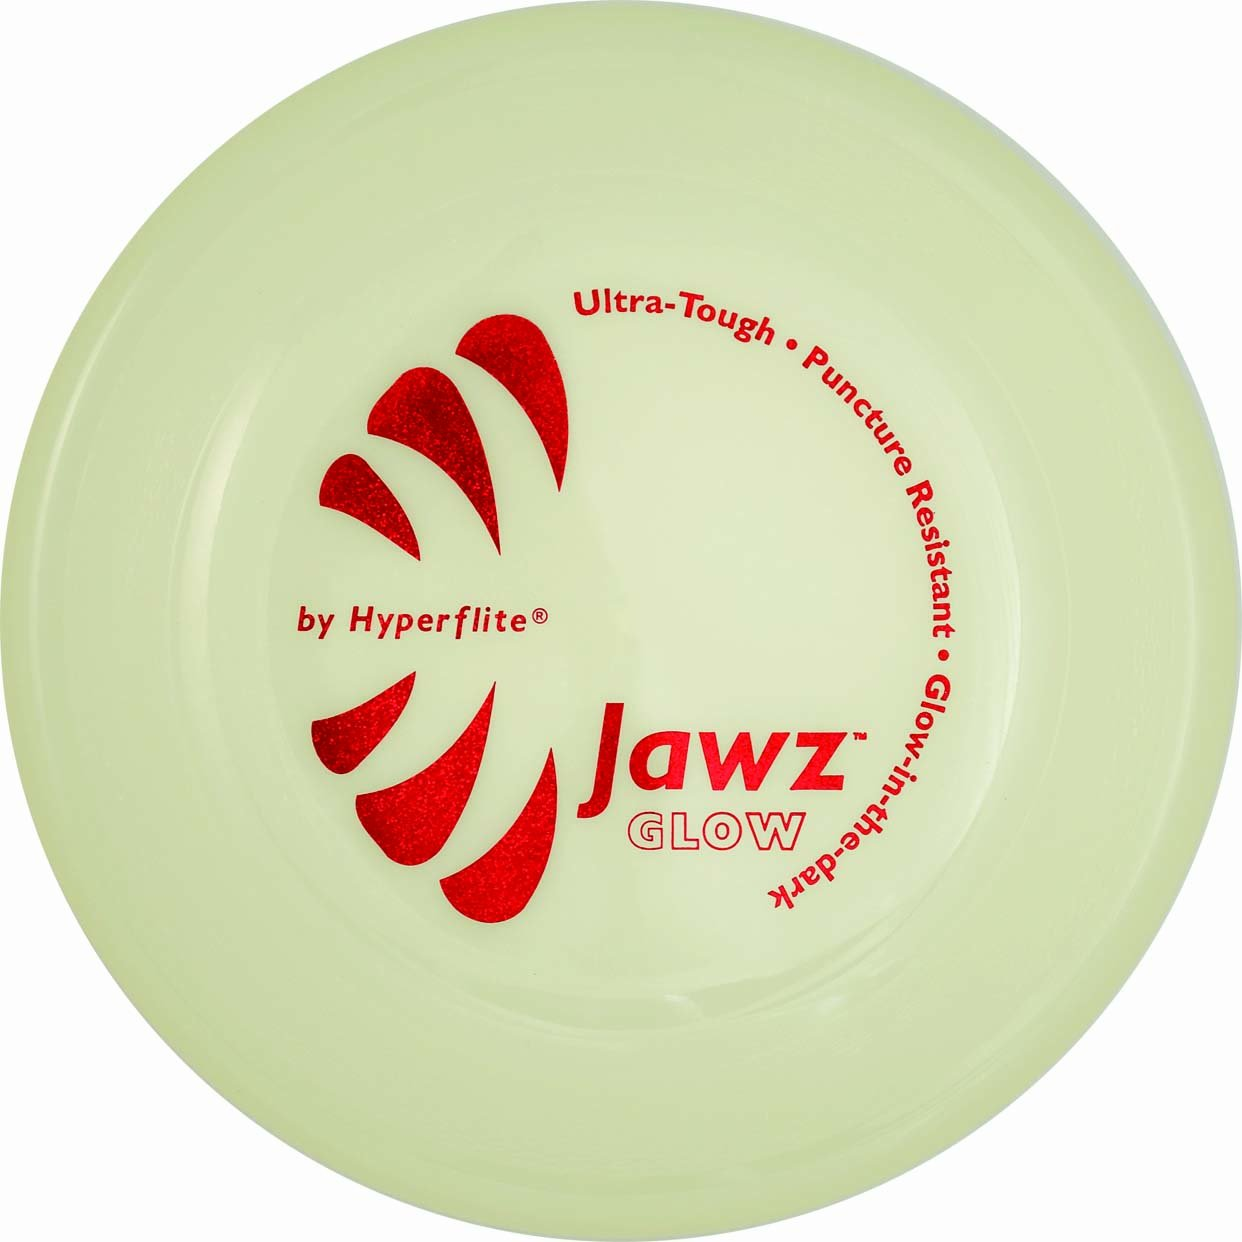 Hyperflite Jawz Pup, 7-Inch, Glow-in-the-Dark by Hyperflite